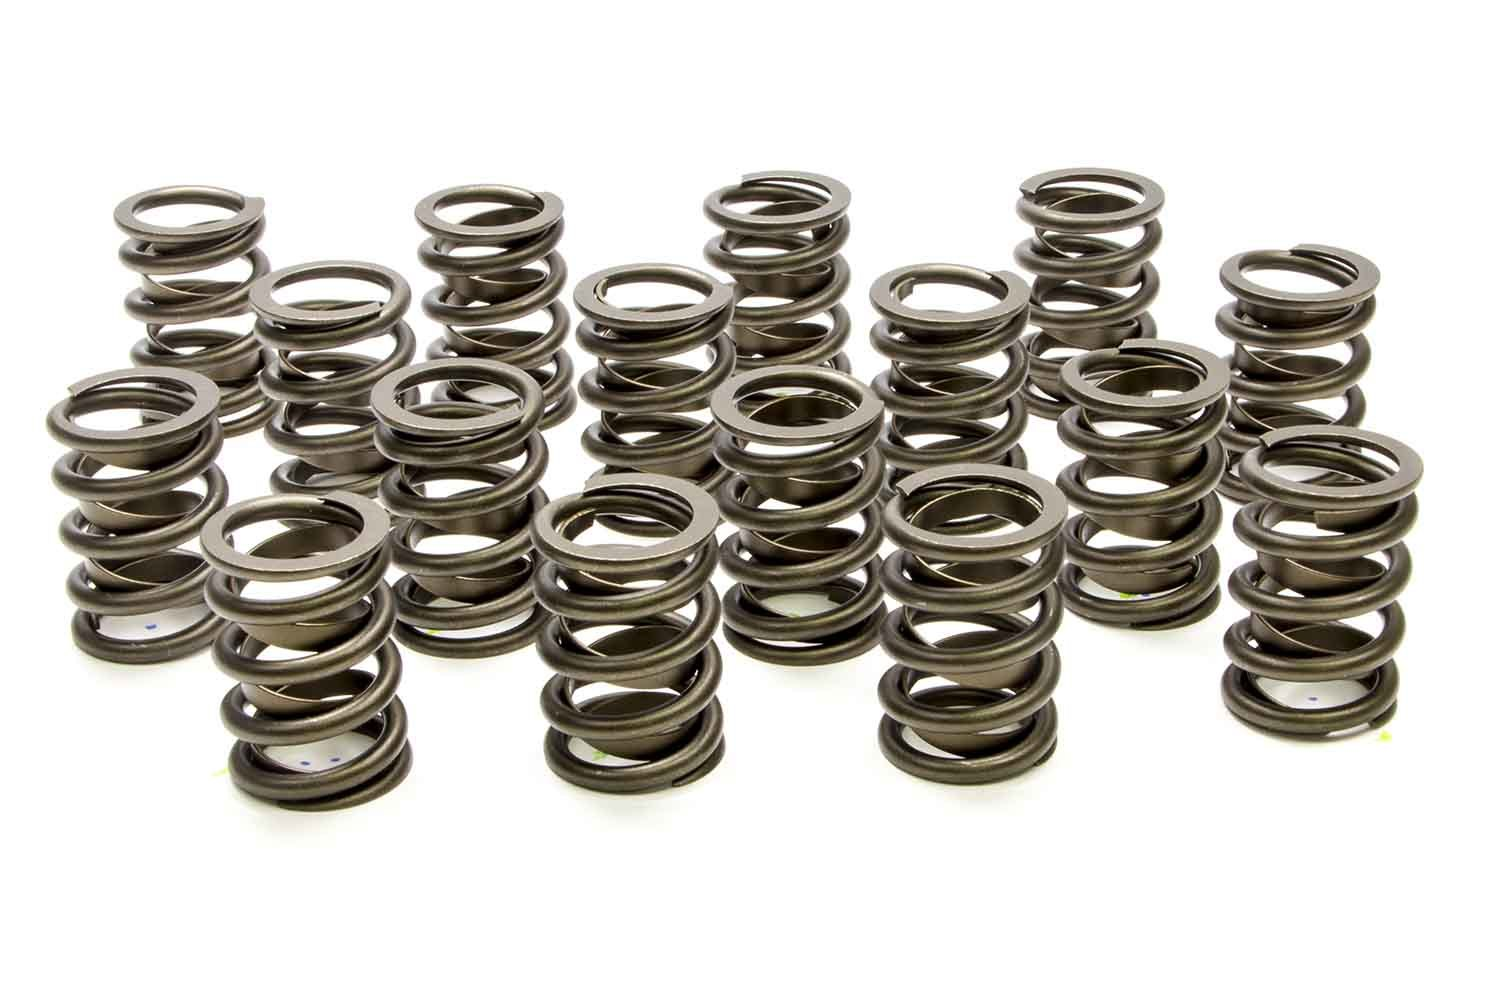 PAC Racing Springs PAC-1909 Valve Spring, Hot Rod Series, Single Spring / Damper, 402 lb/in Spring Rate, 1.150 in Coil Bind, 1.255 in OD, Small Block Chevy, Set of 16